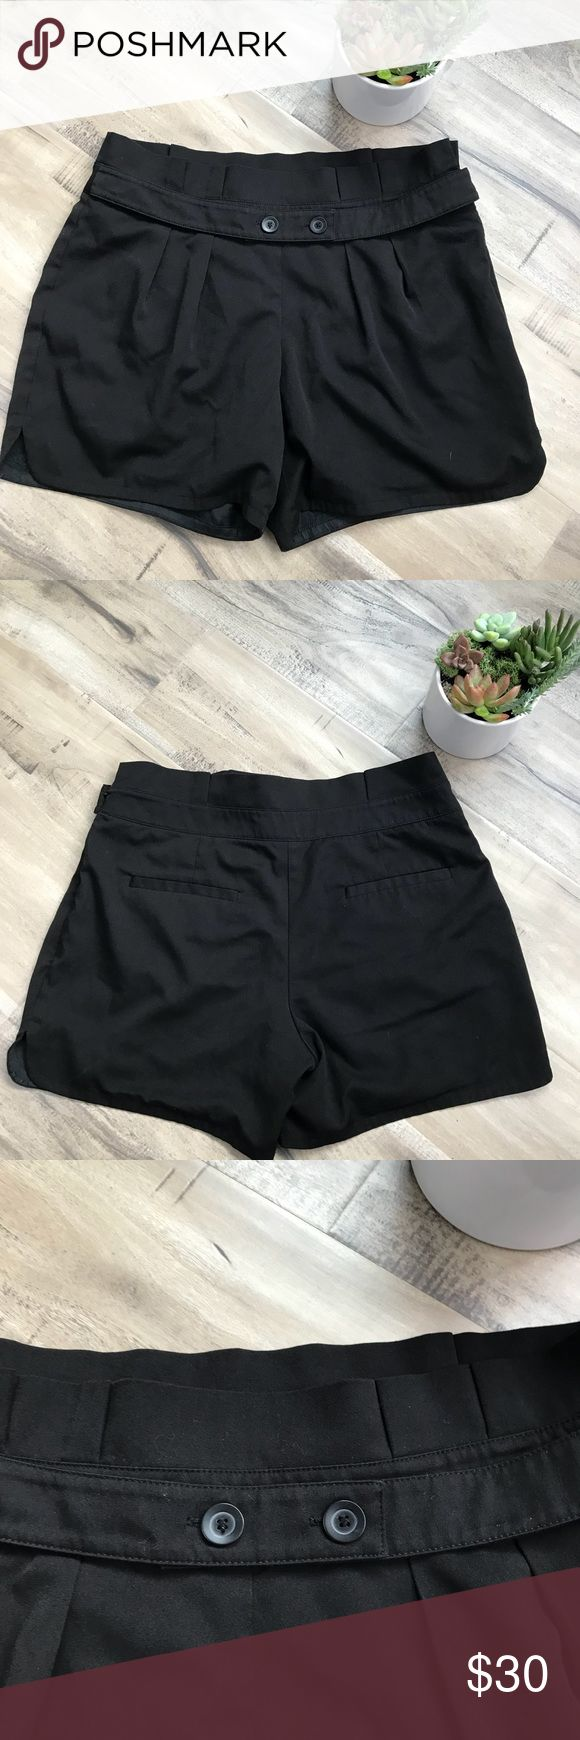 BCBGeneration High Waisted Black Pleated Shorts 8 Super cute! Perfect for All Seasons! Excellent condition! No flaws BCBGeneration Shorts